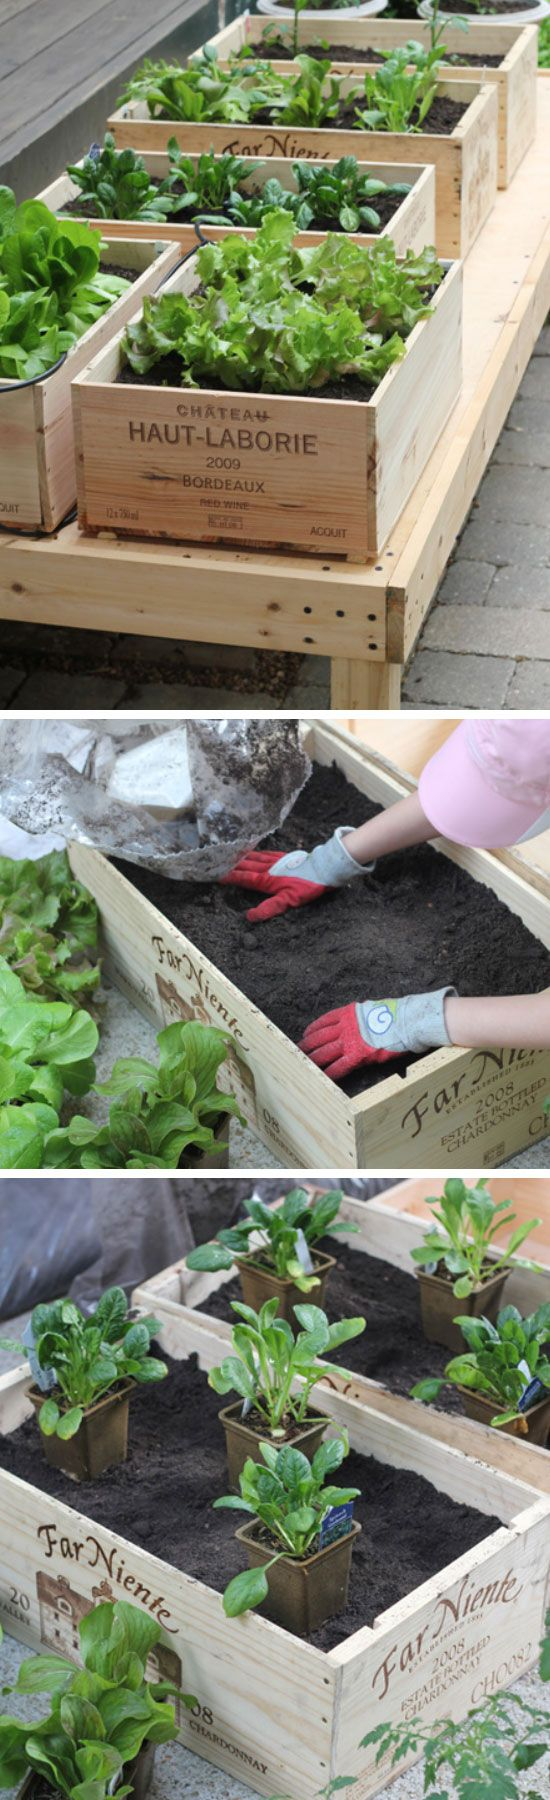 Upcycle Crates Into Raised Vegetable Garden | Click Pic For 20 DIY Garden  Ideas On A